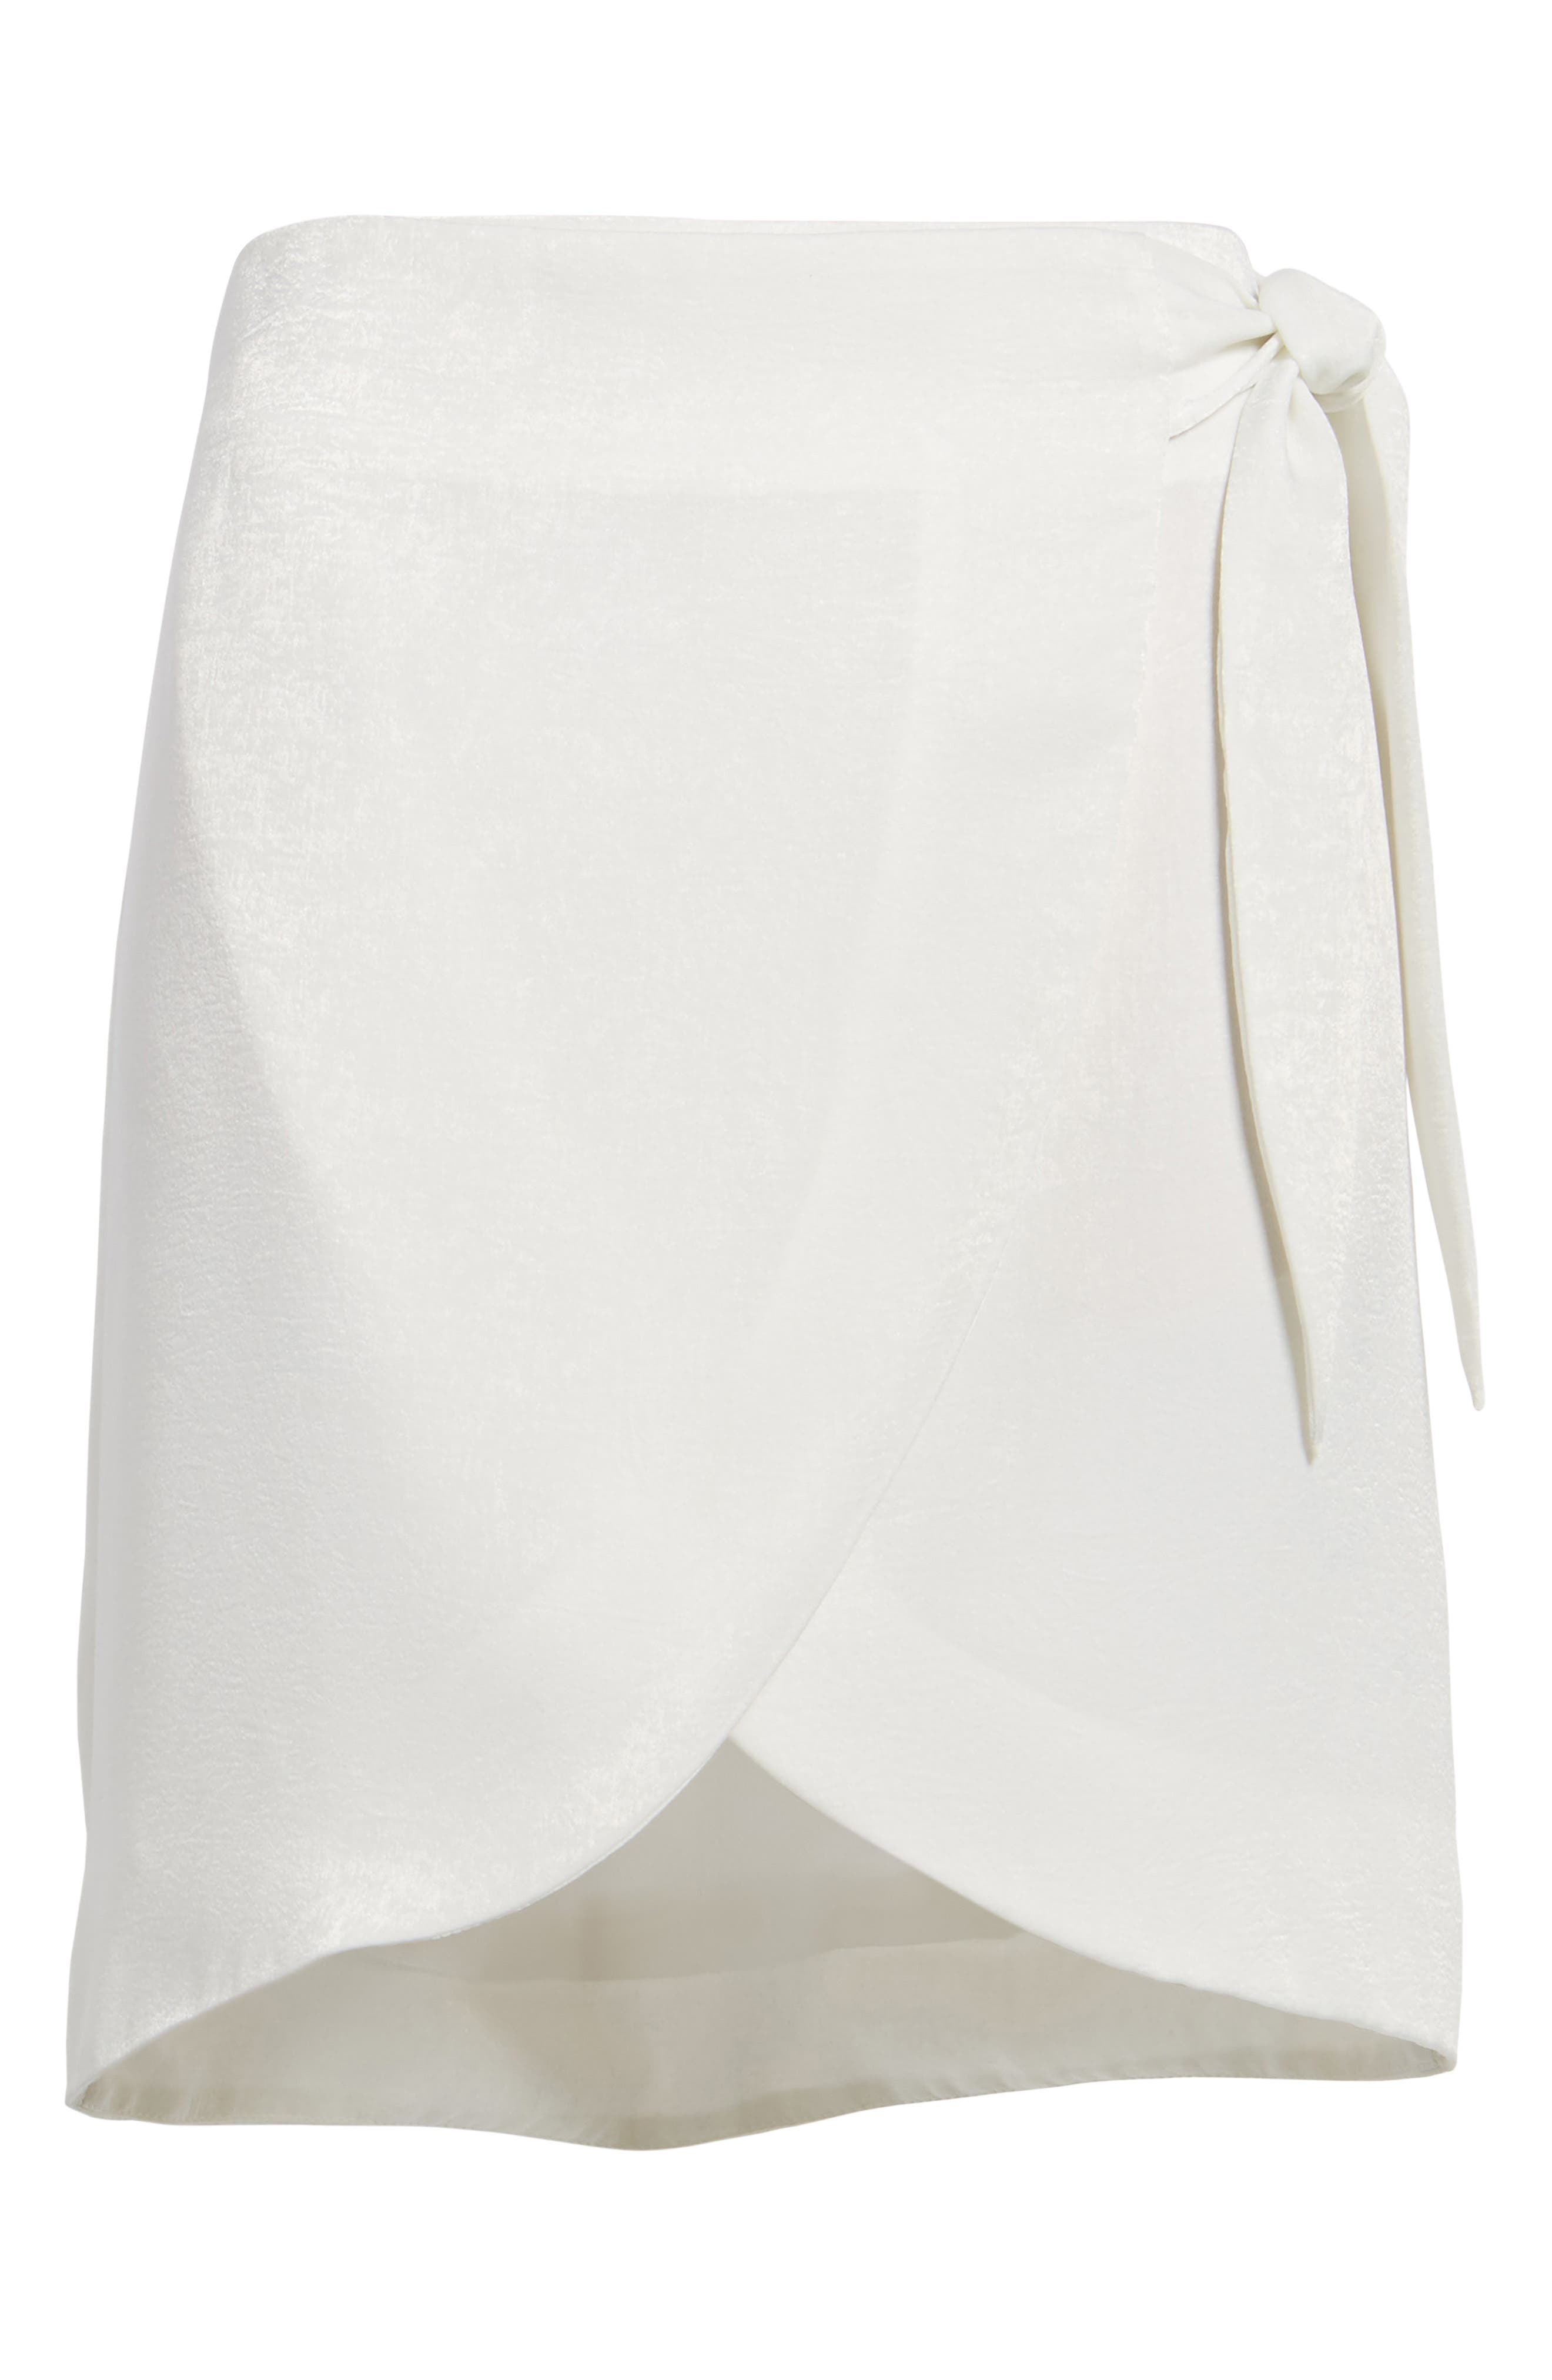 Wrap Skirt,                             Alternate thumbnail 6, color,                             White